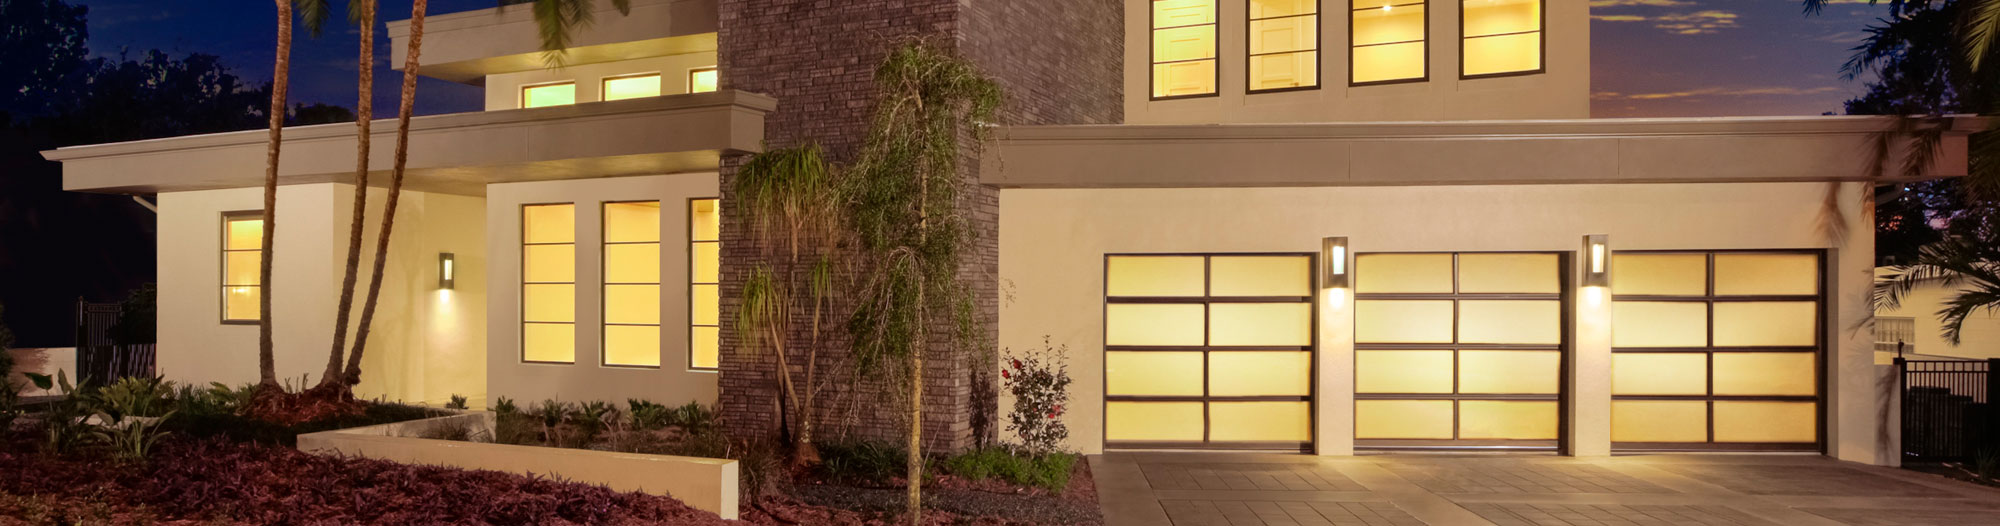 Garage Door Installation Repair In Nashville Exl Garage Doors